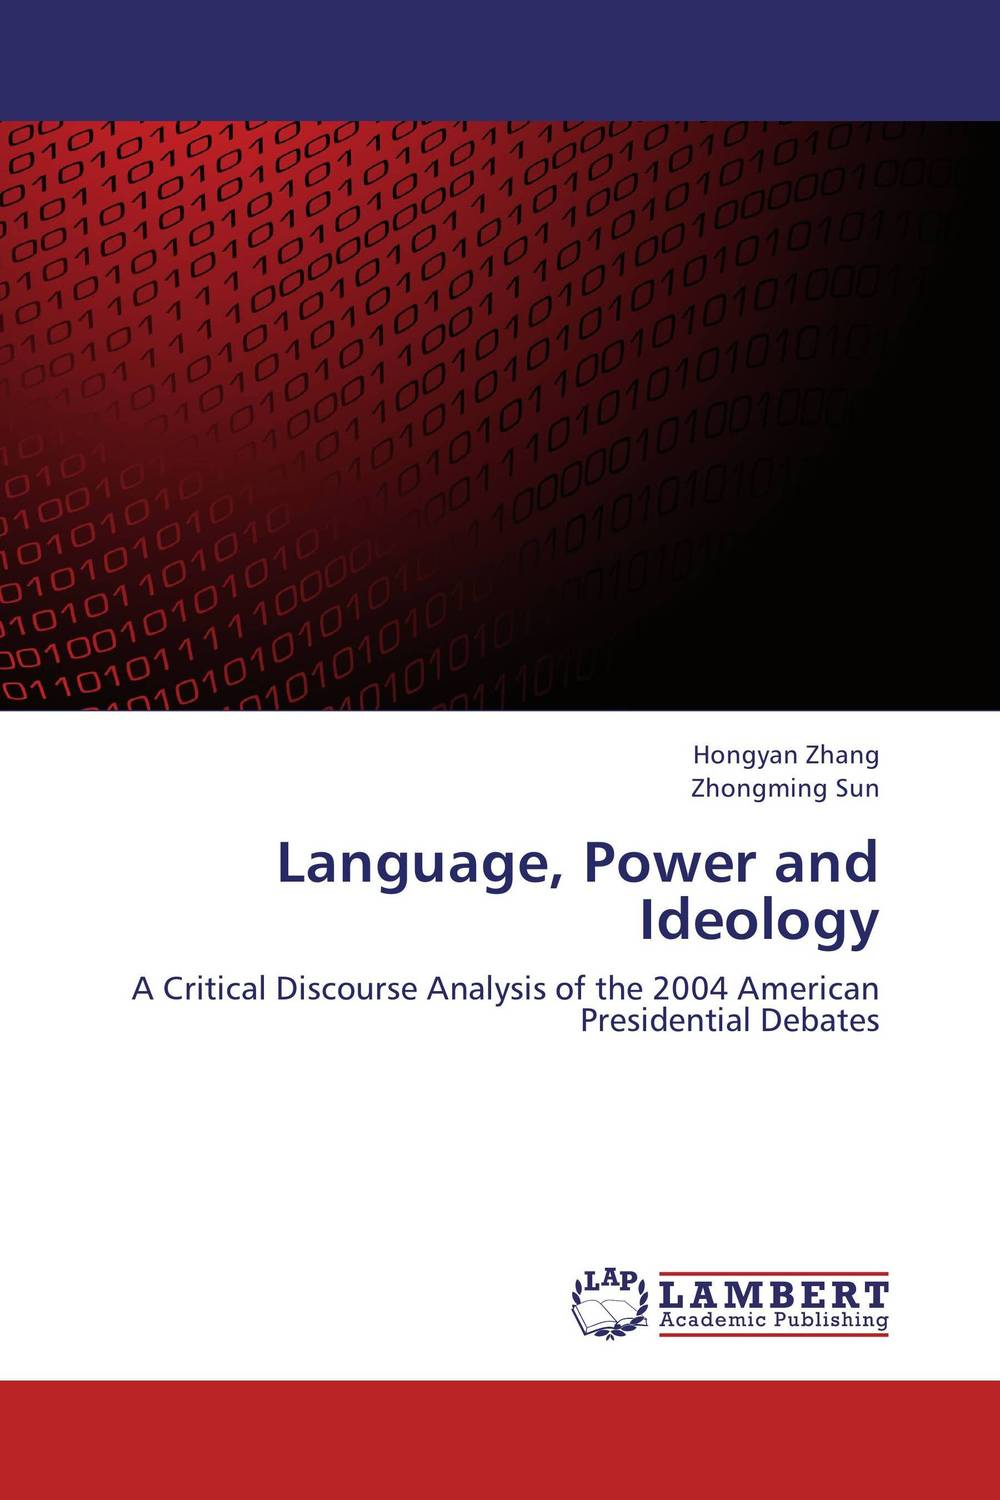 Language, Power and Ideology communities of discourse – ideology